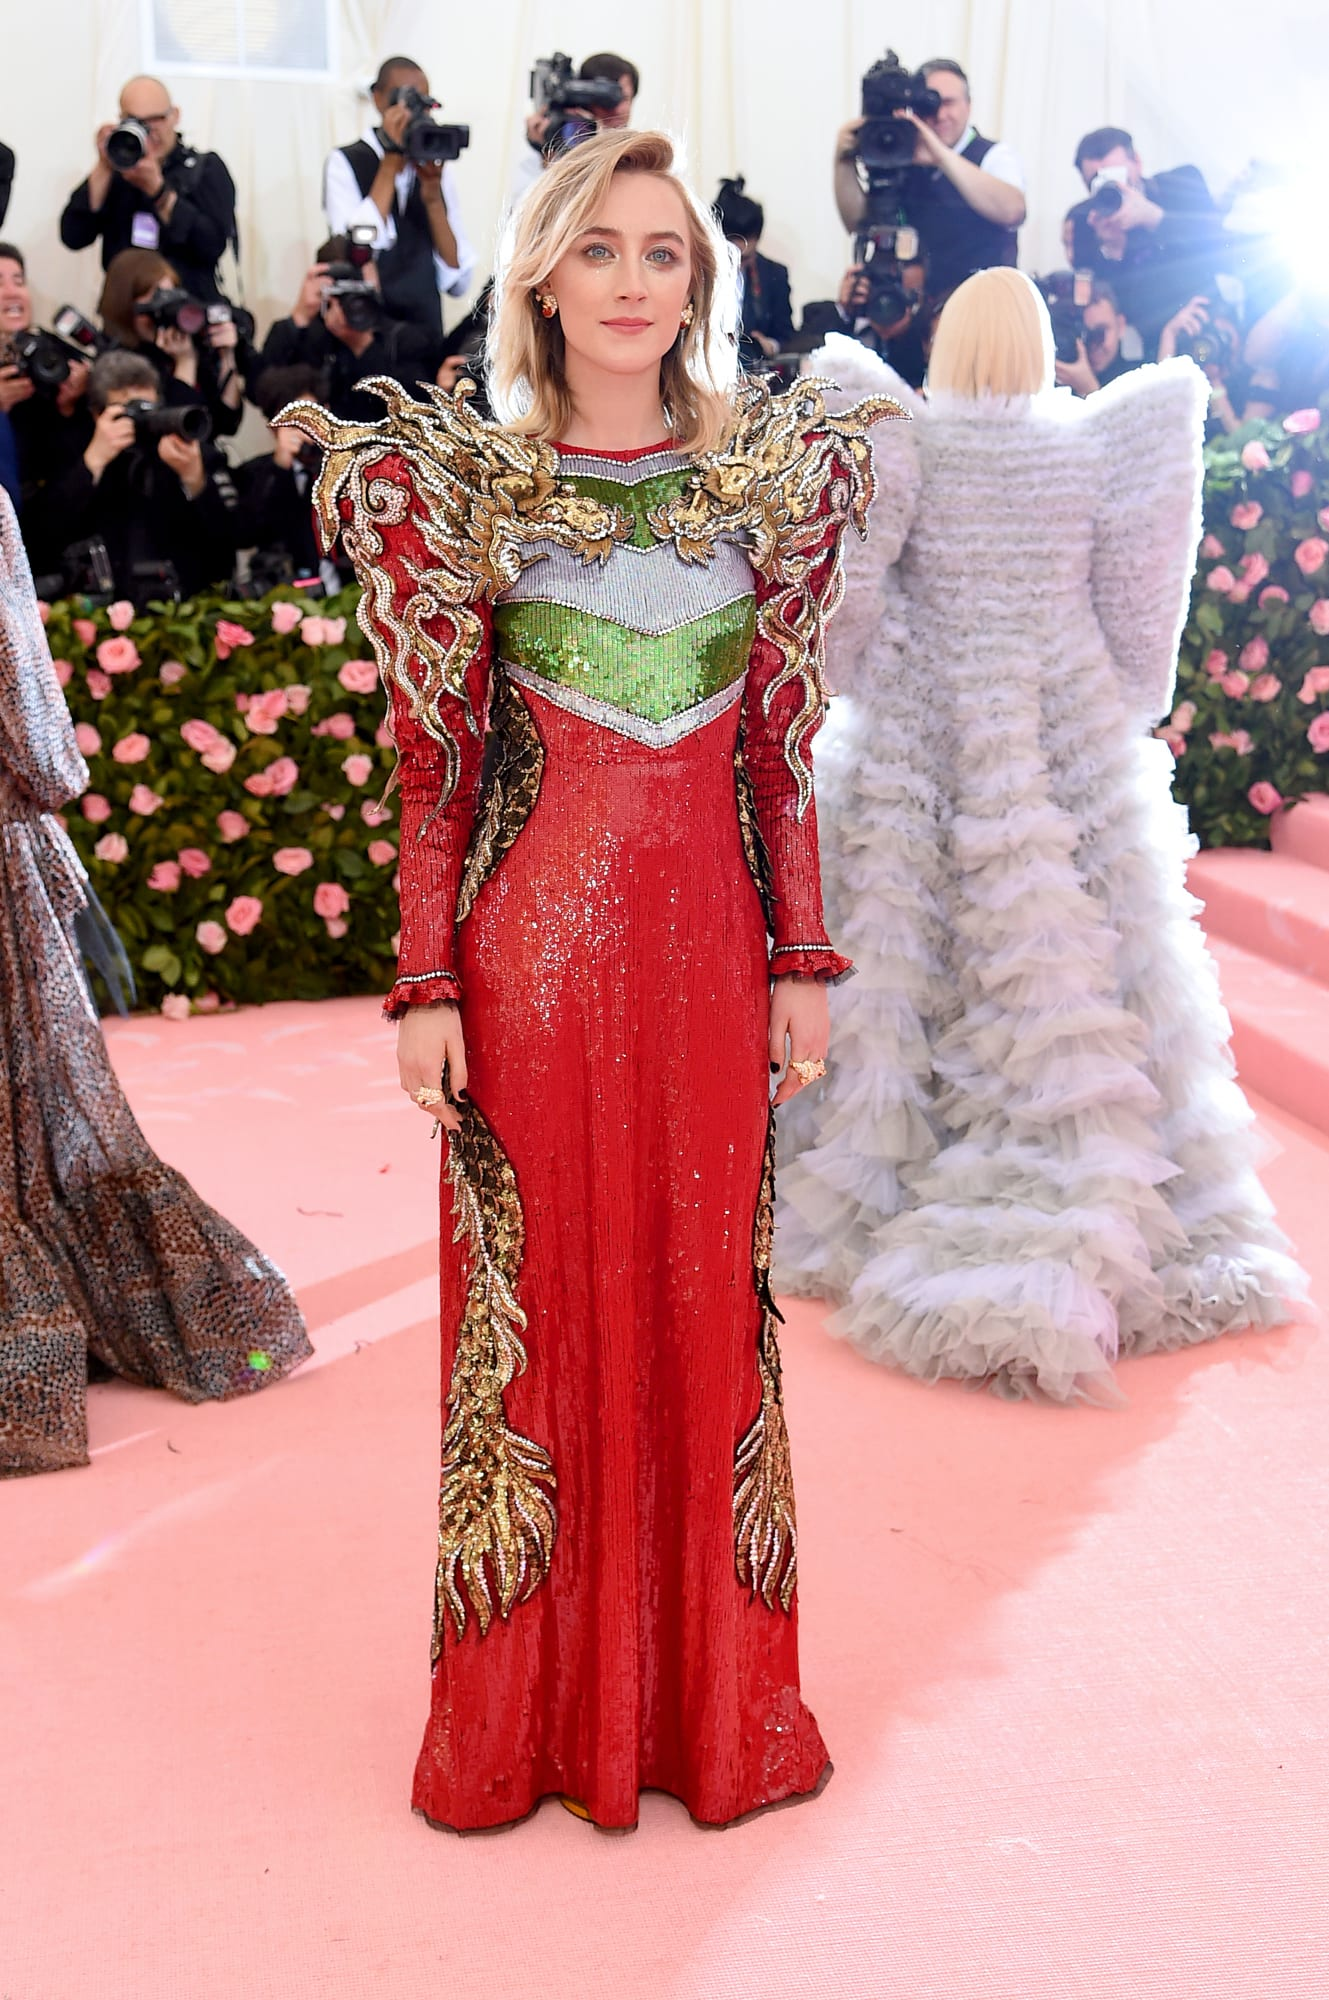 - Yes, Gucci is always a wise choice for being campy.Saorise Ronan in this bright red sequinned gown featuring golden-flame shoulders. Although I can't deny the dress is quite sensational, I wish I could see a more outraging makeup look or head piece.